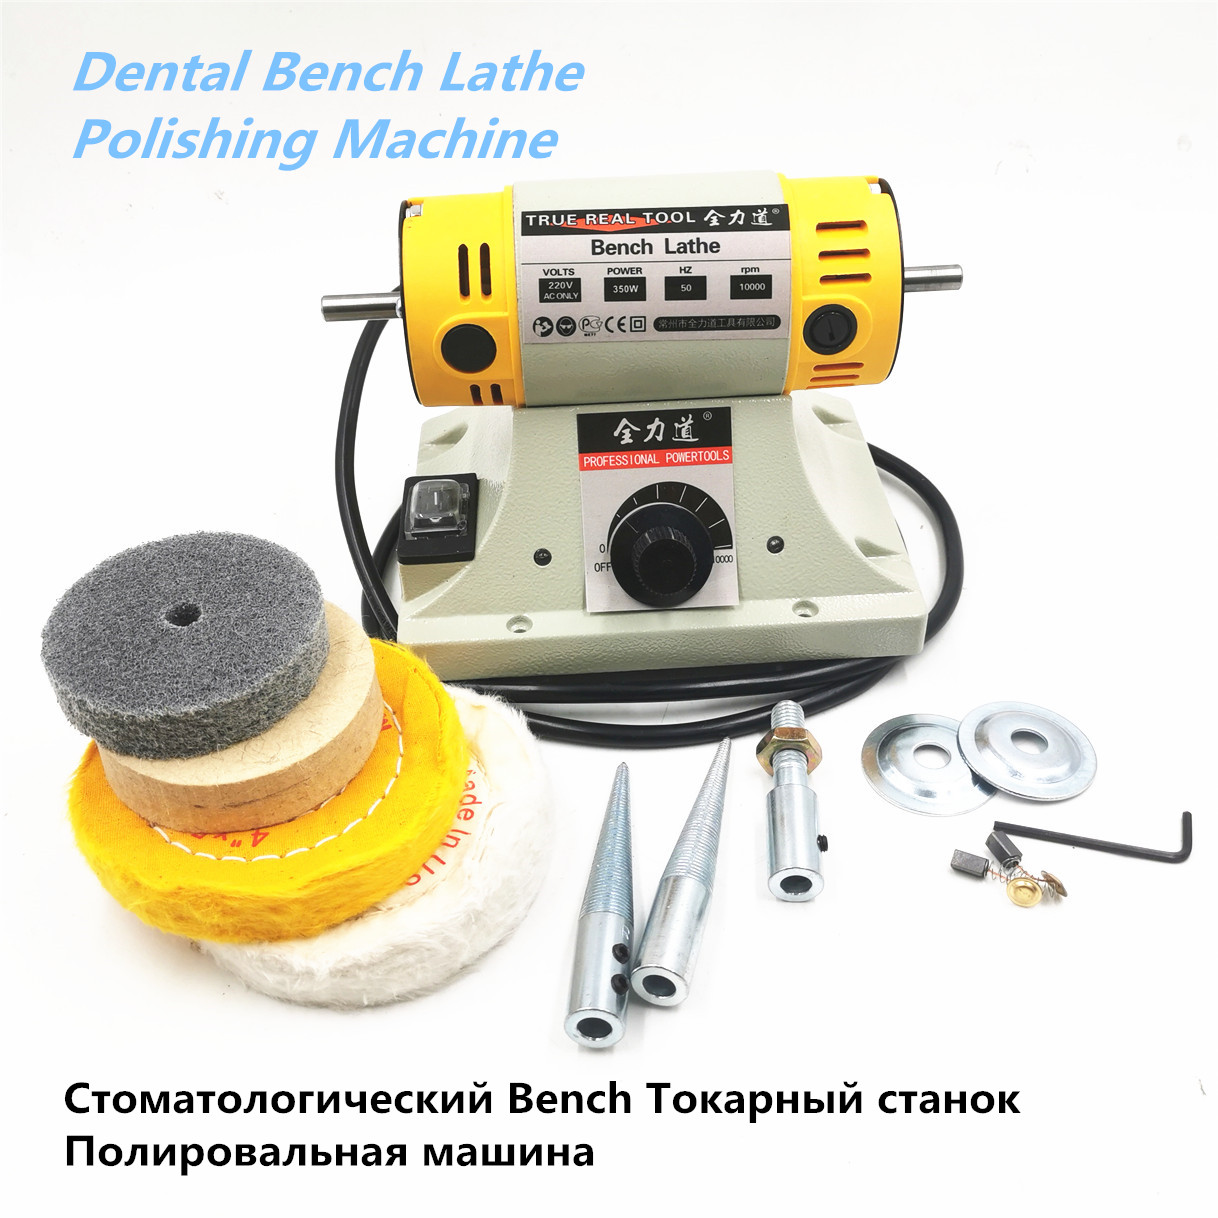 220V 350W Polishing Machine For DIY Woodworking JadeJewelry Dental Bench Lathe Machine Motor Grinding Machine